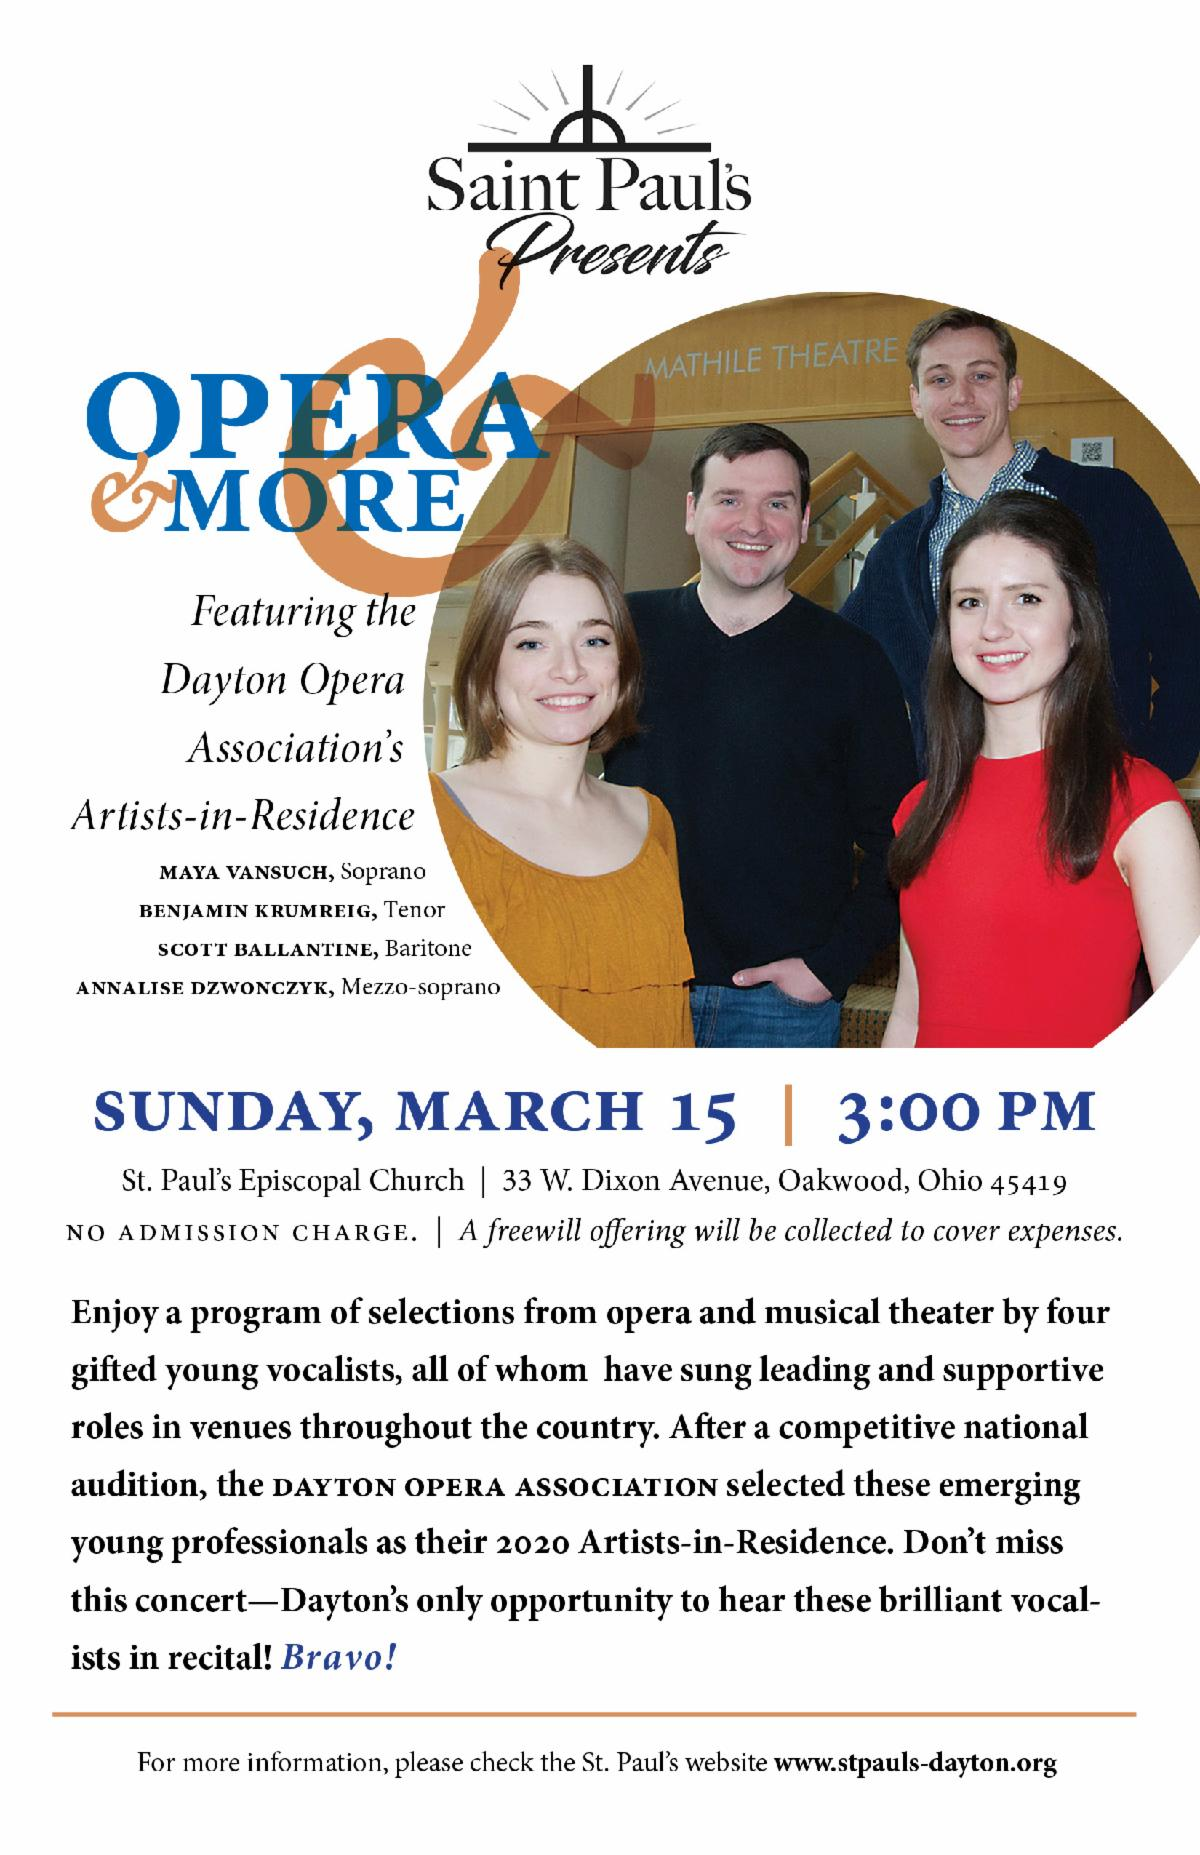 Opera and More flyer